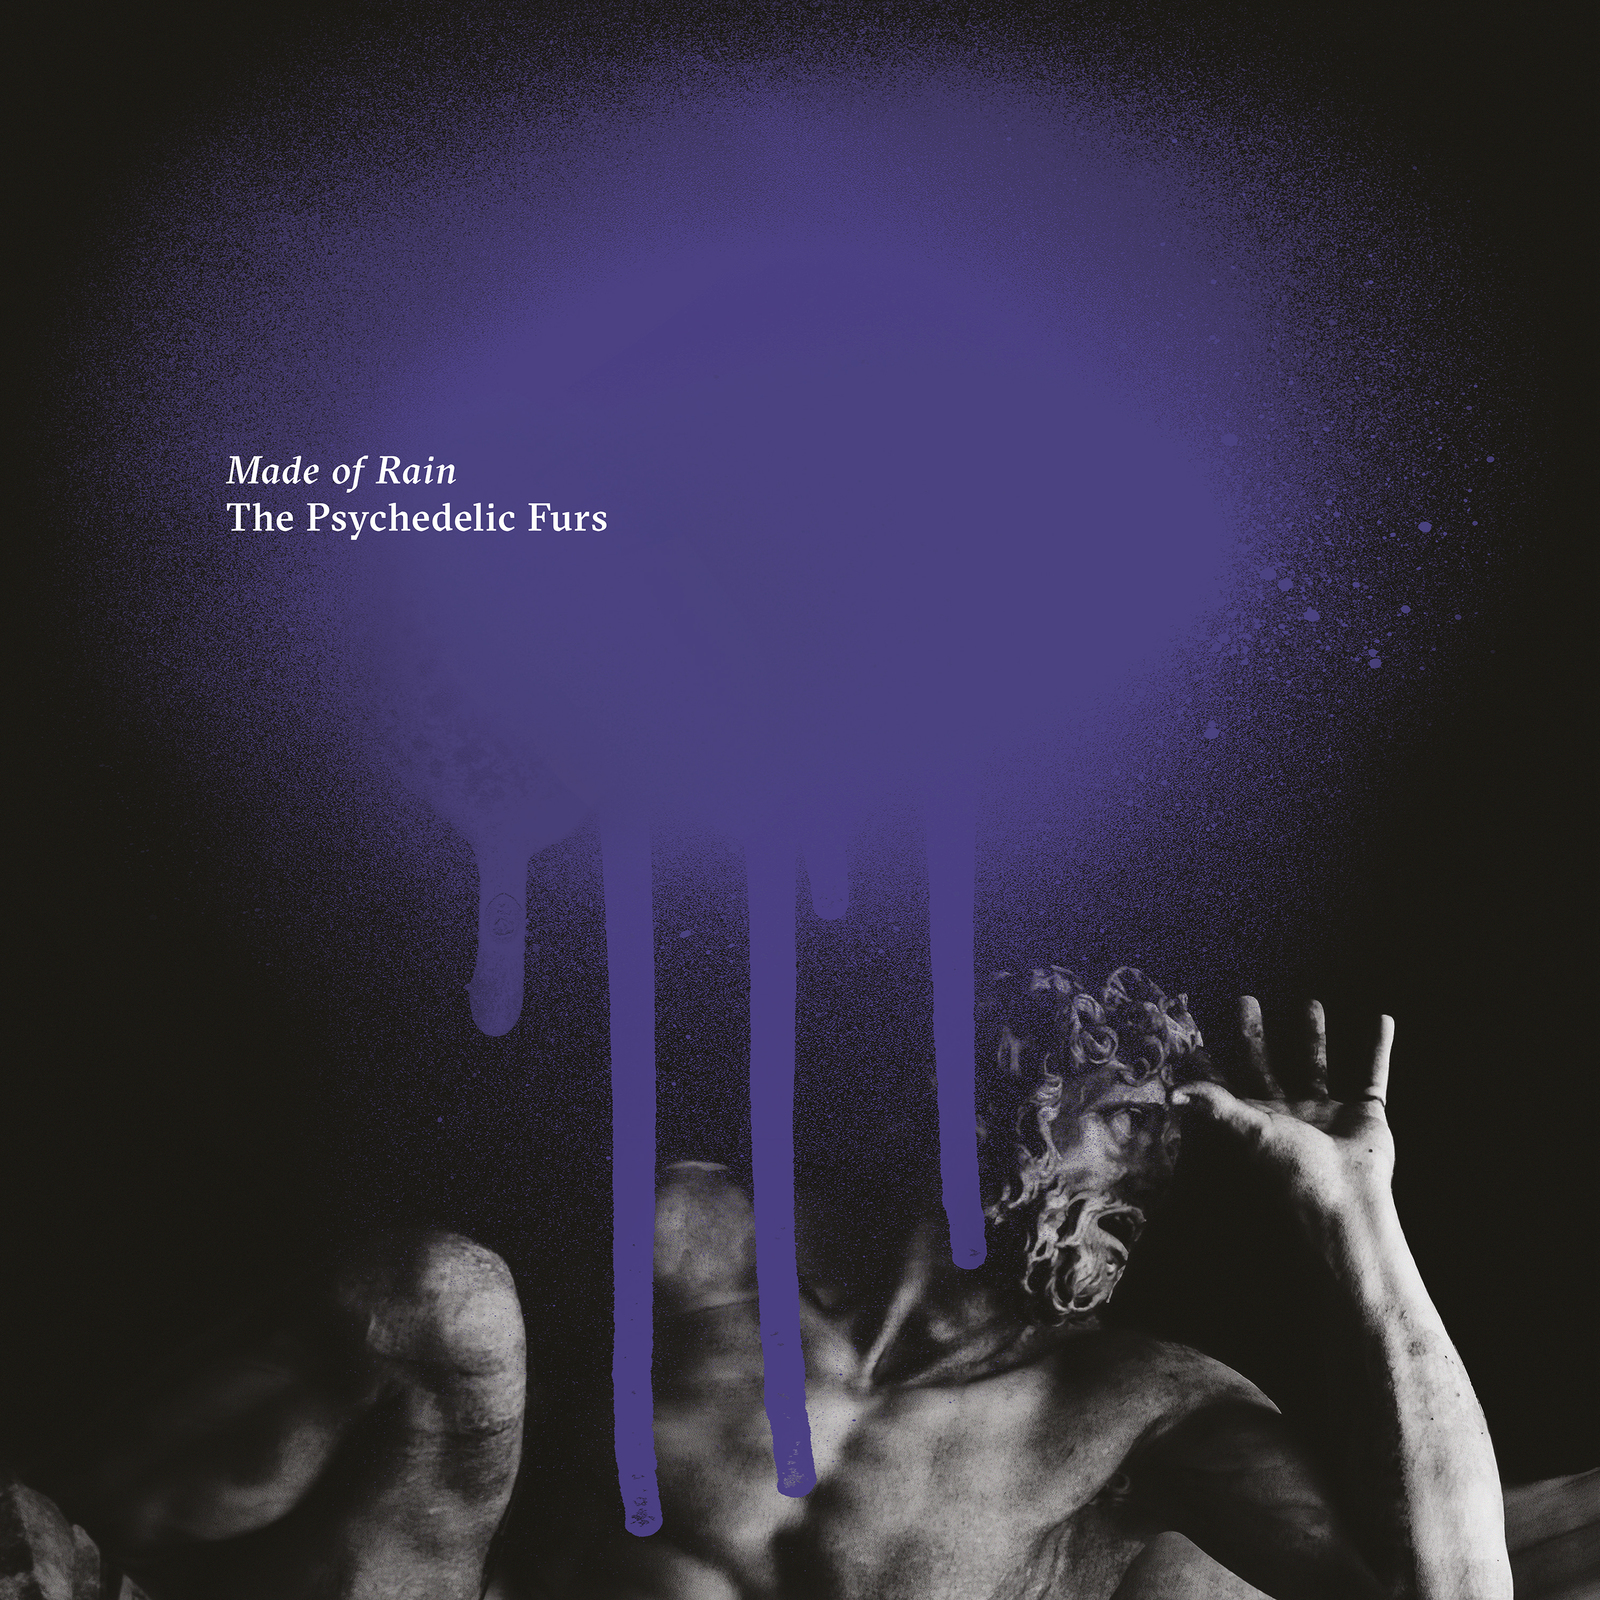 Made Of Rain by The Psychedelic Furs image